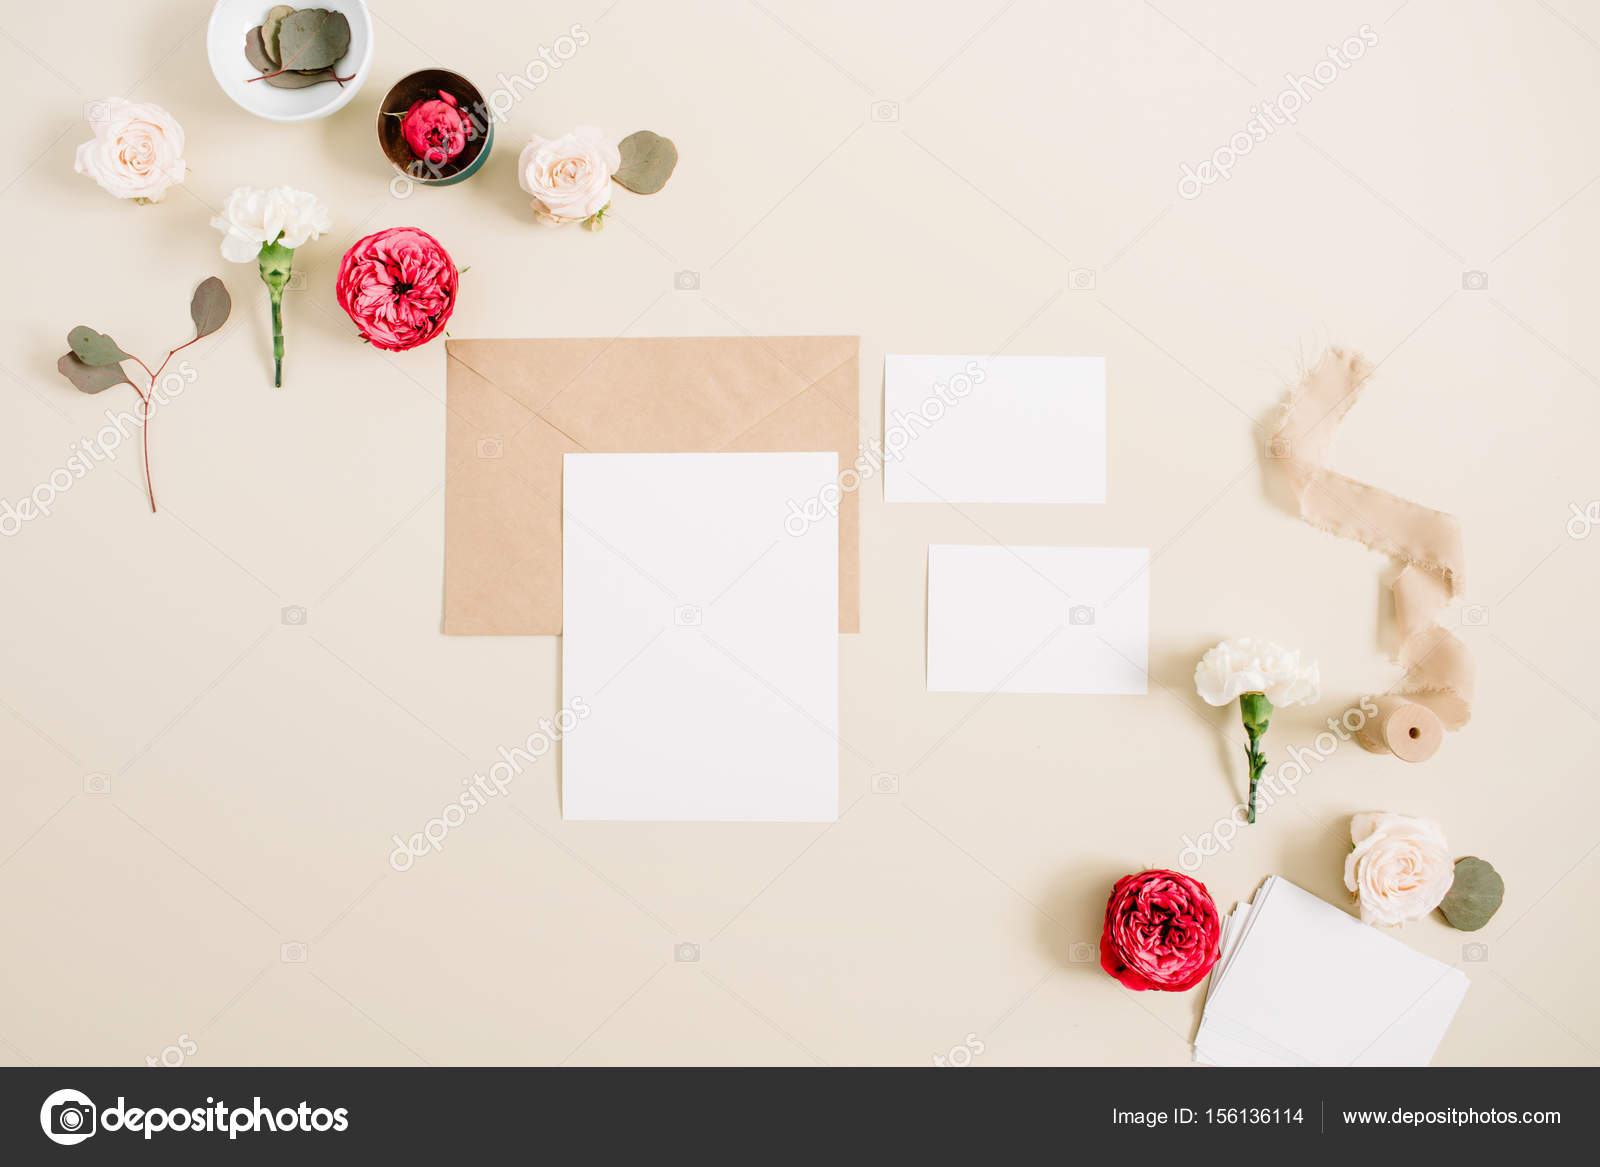 Wedding Invitation Cards Craft Envelope Pink And Red Rose Flower Buds White Carnation On Pale Pastel Beige Background Workspace With Paper Blank